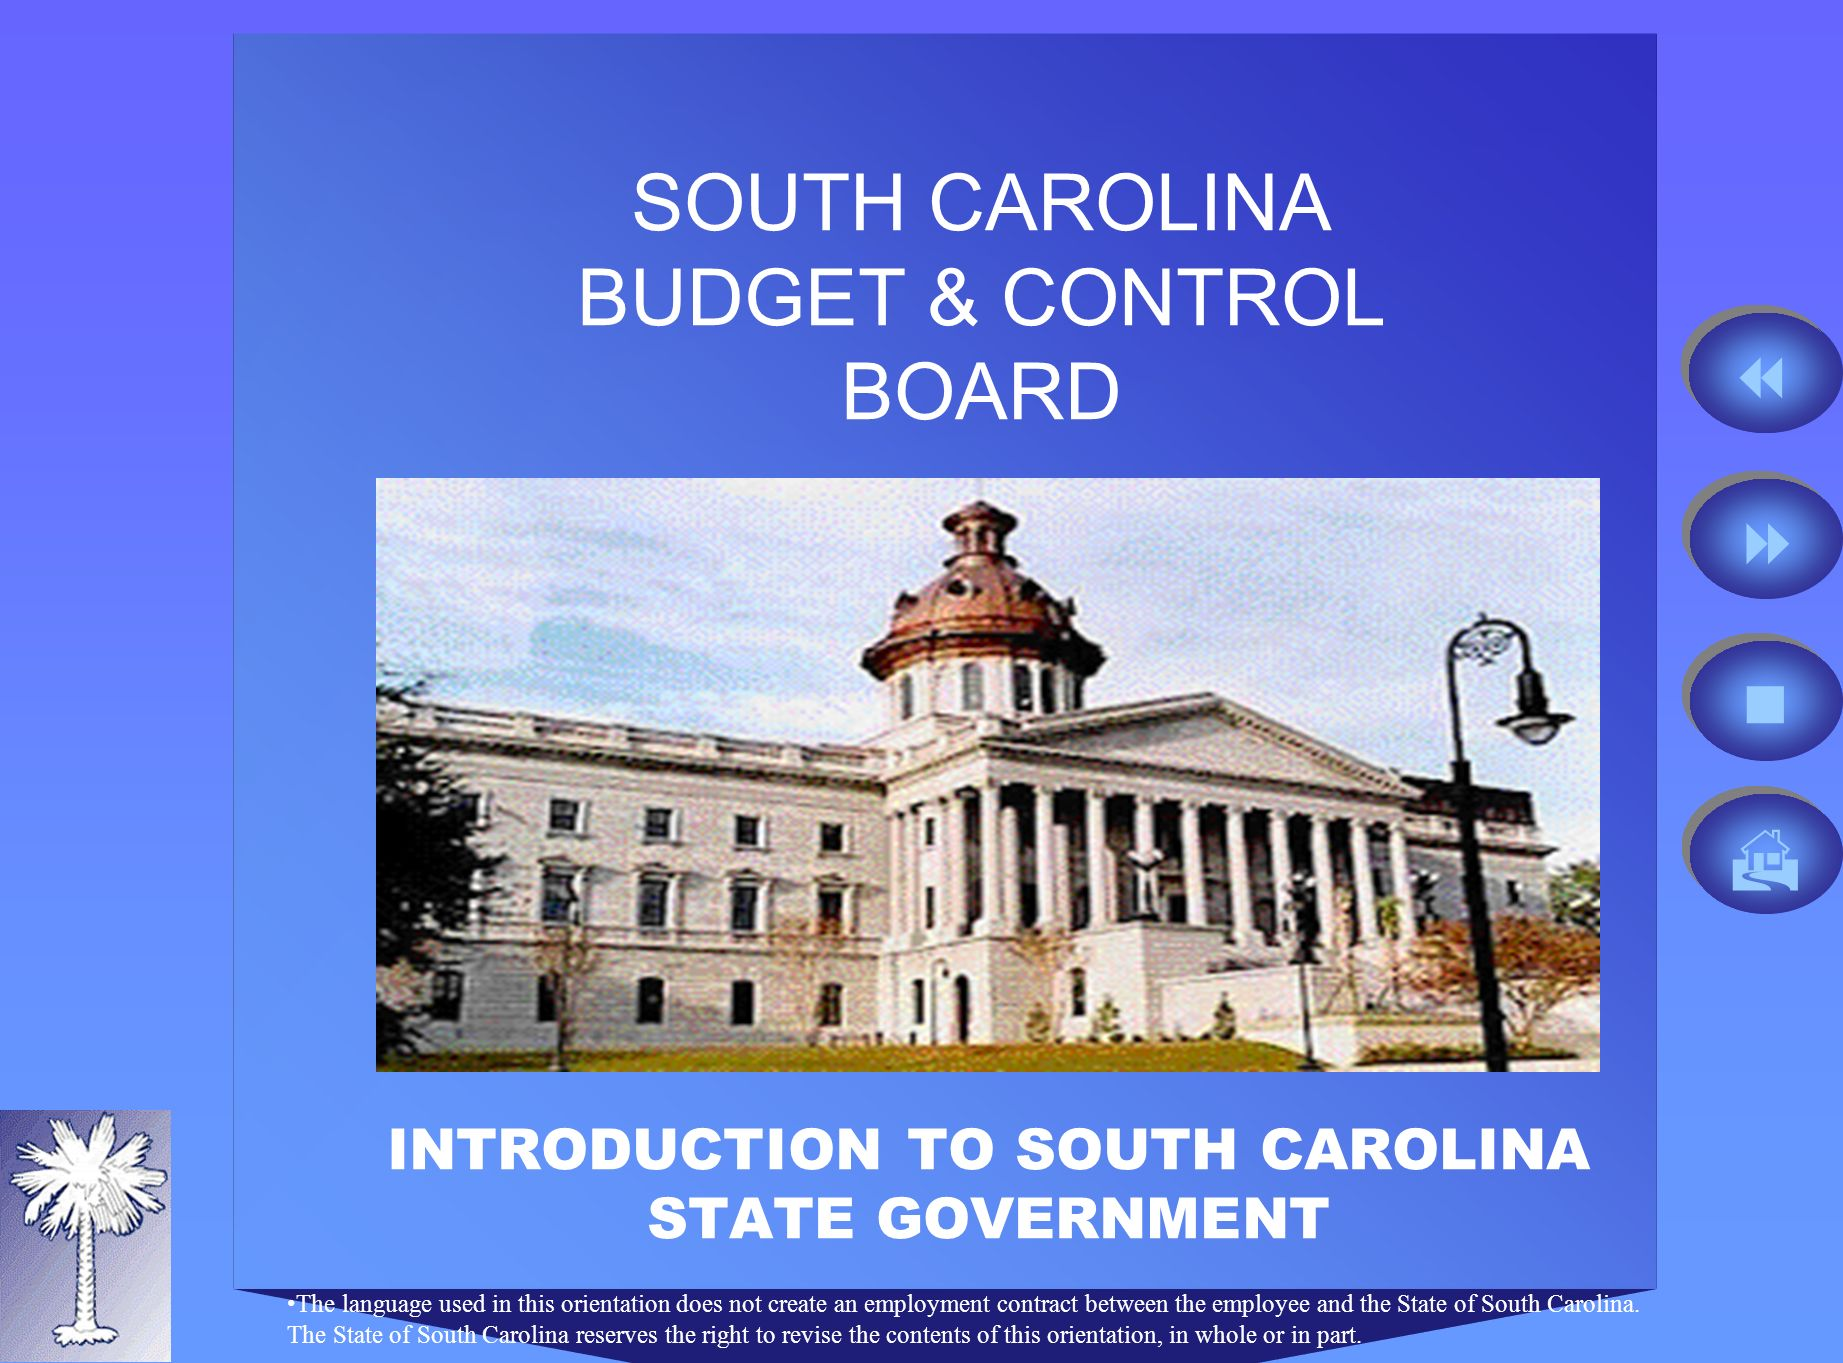 INTRODUCTION In this section you will learn about: –Key facts about South Carolina State Government employment –Careers in South Carolina Government –Key information such as links to state agencies and state ethics policies.